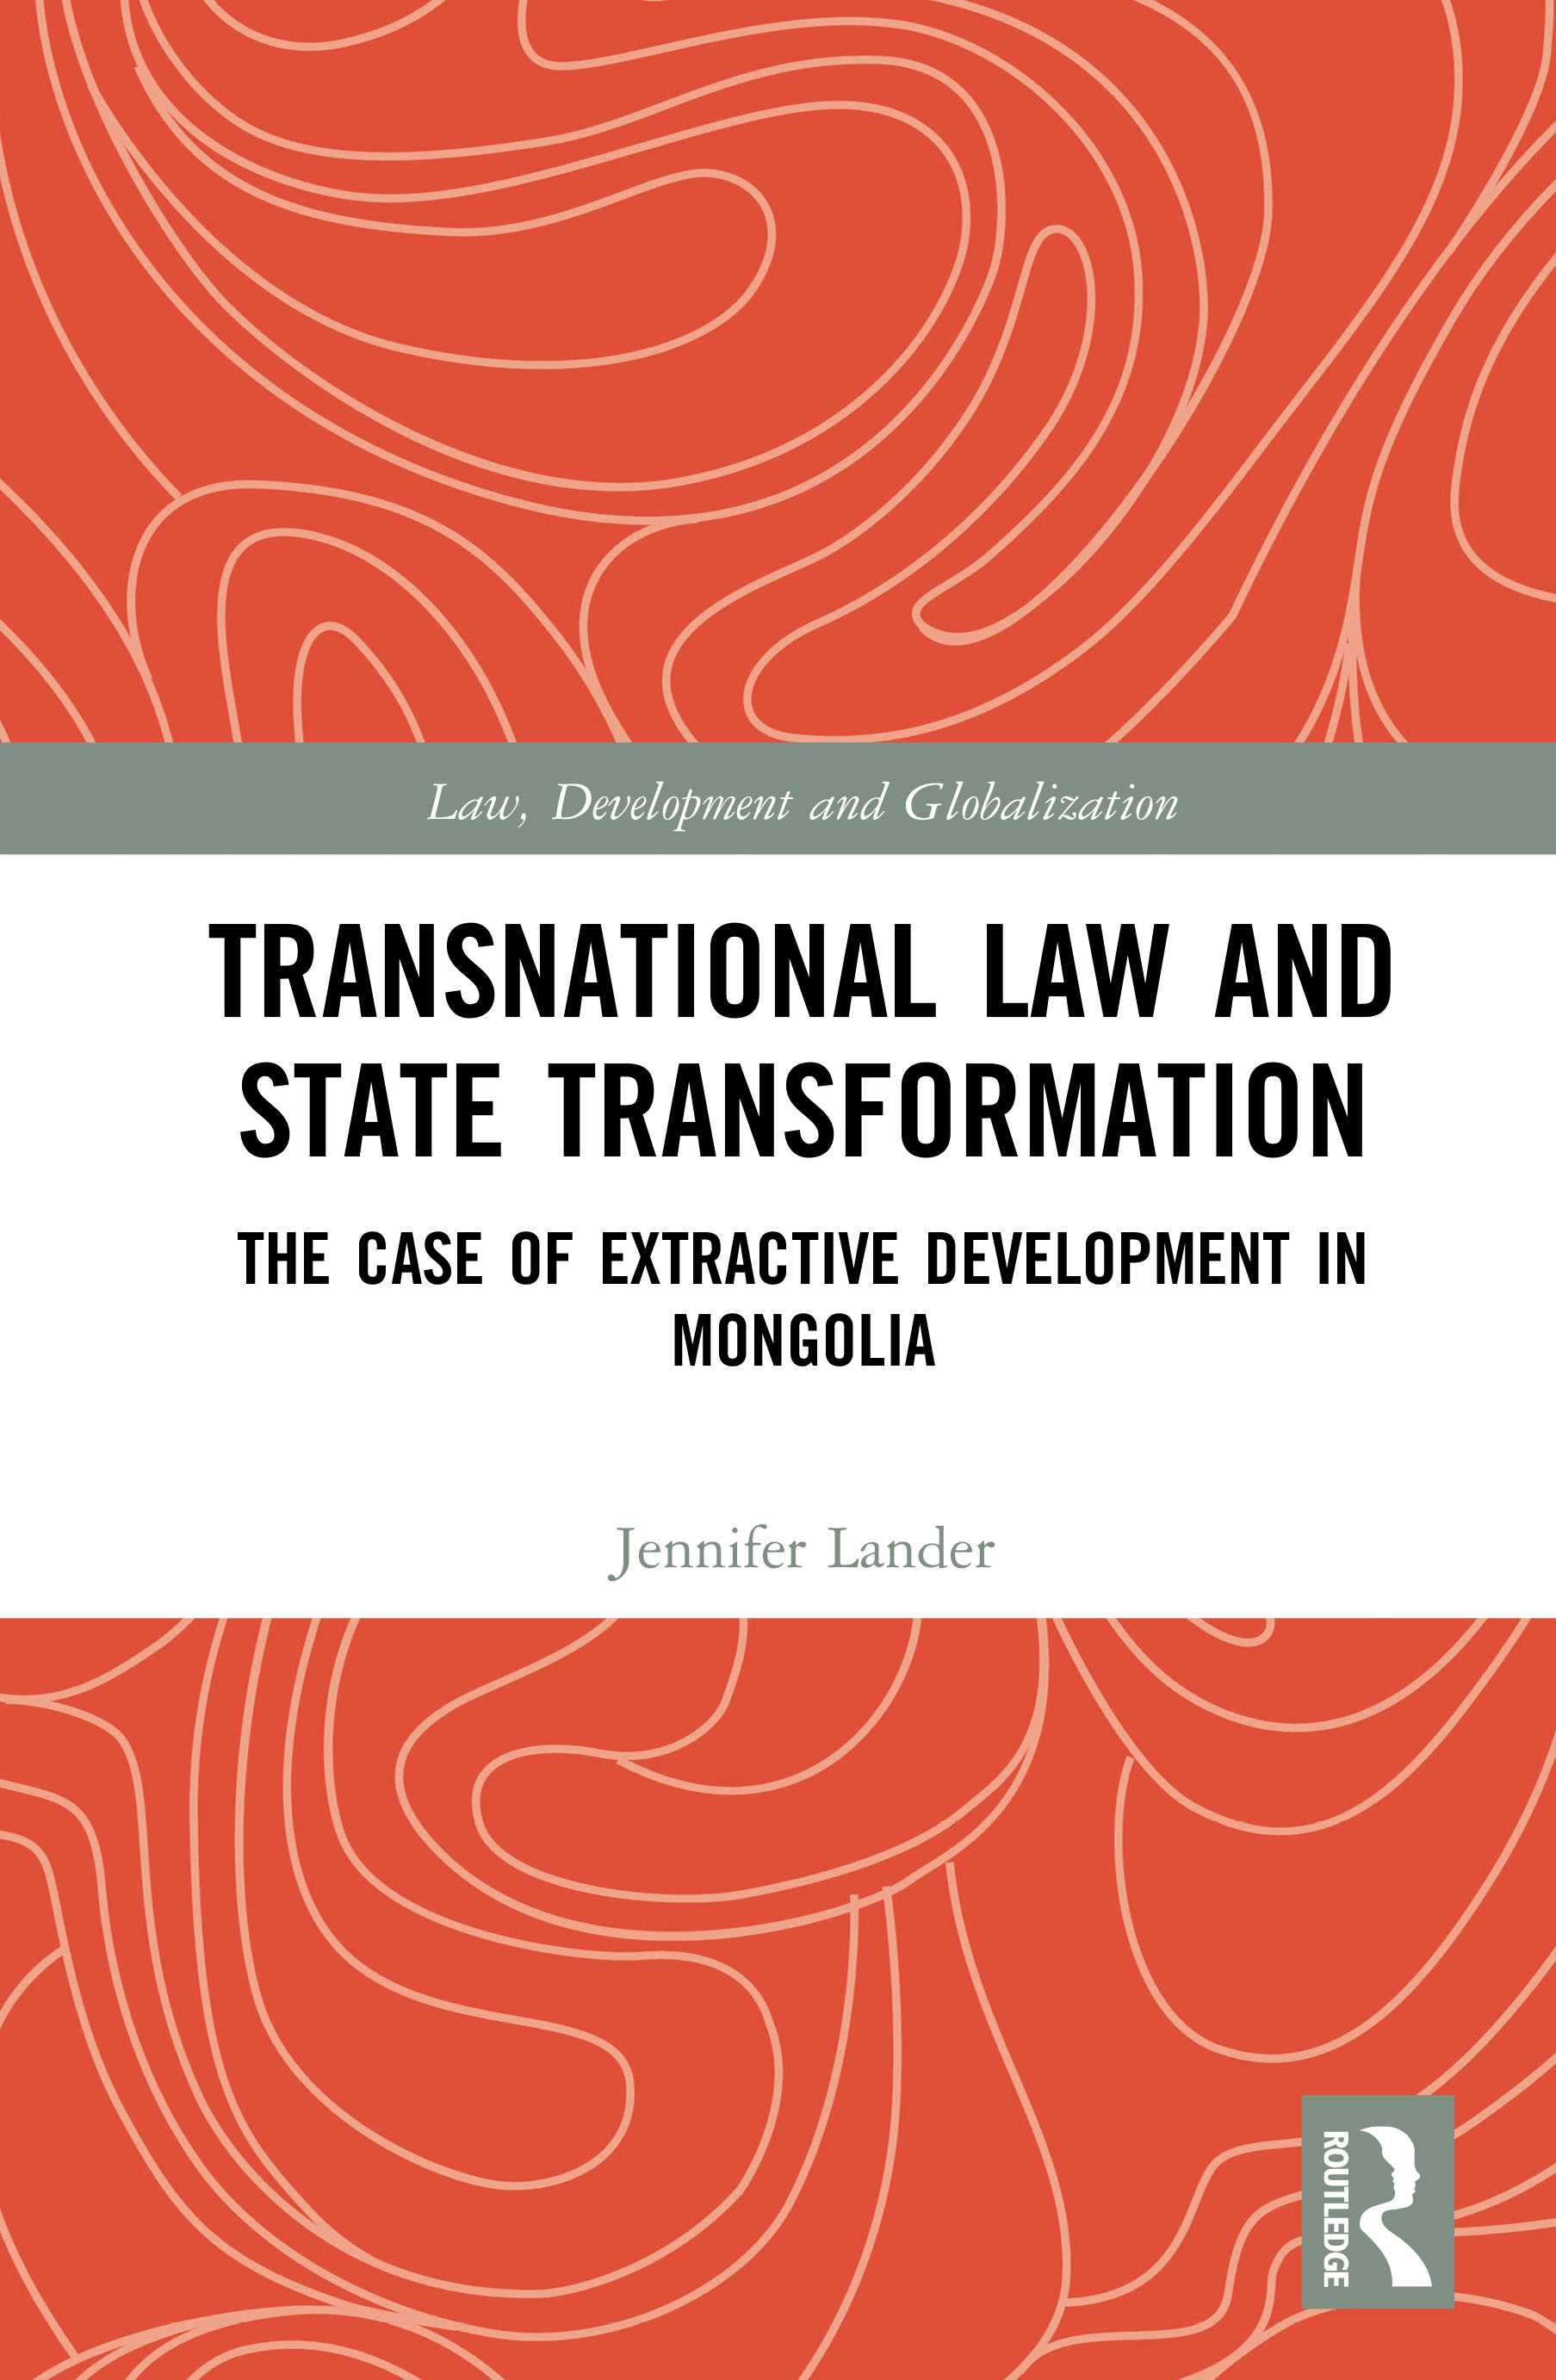 Transnational Law and State Transformation: The Case of Extractive Development in Mongolia book cover